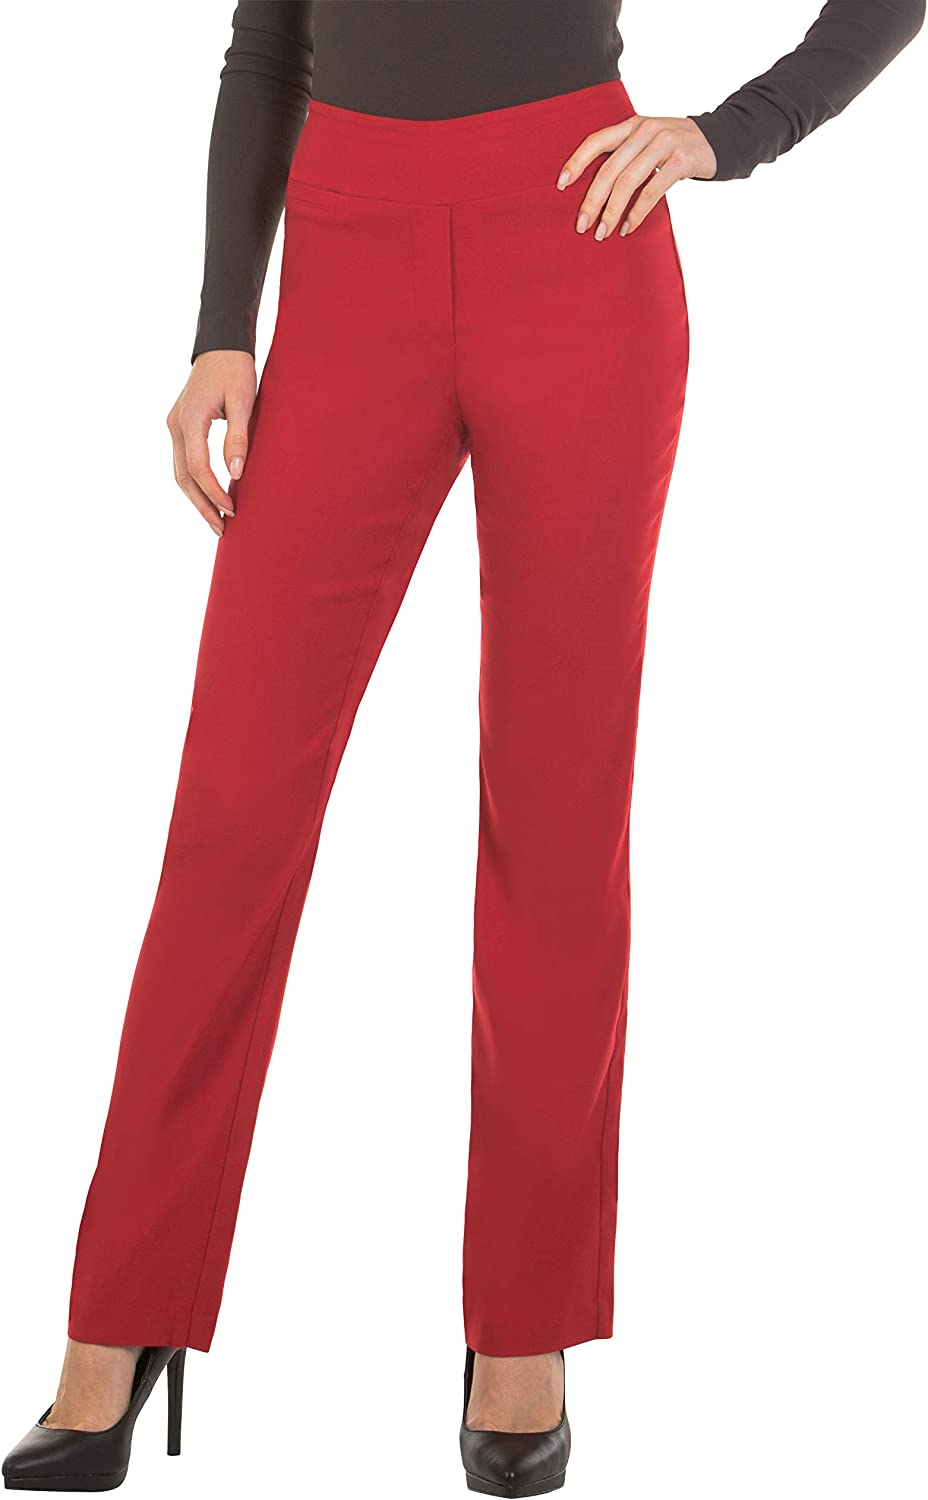 Red Hanger Bootcut Dress Pants for Women Stretch Comfy Work Pull on Womens Pant